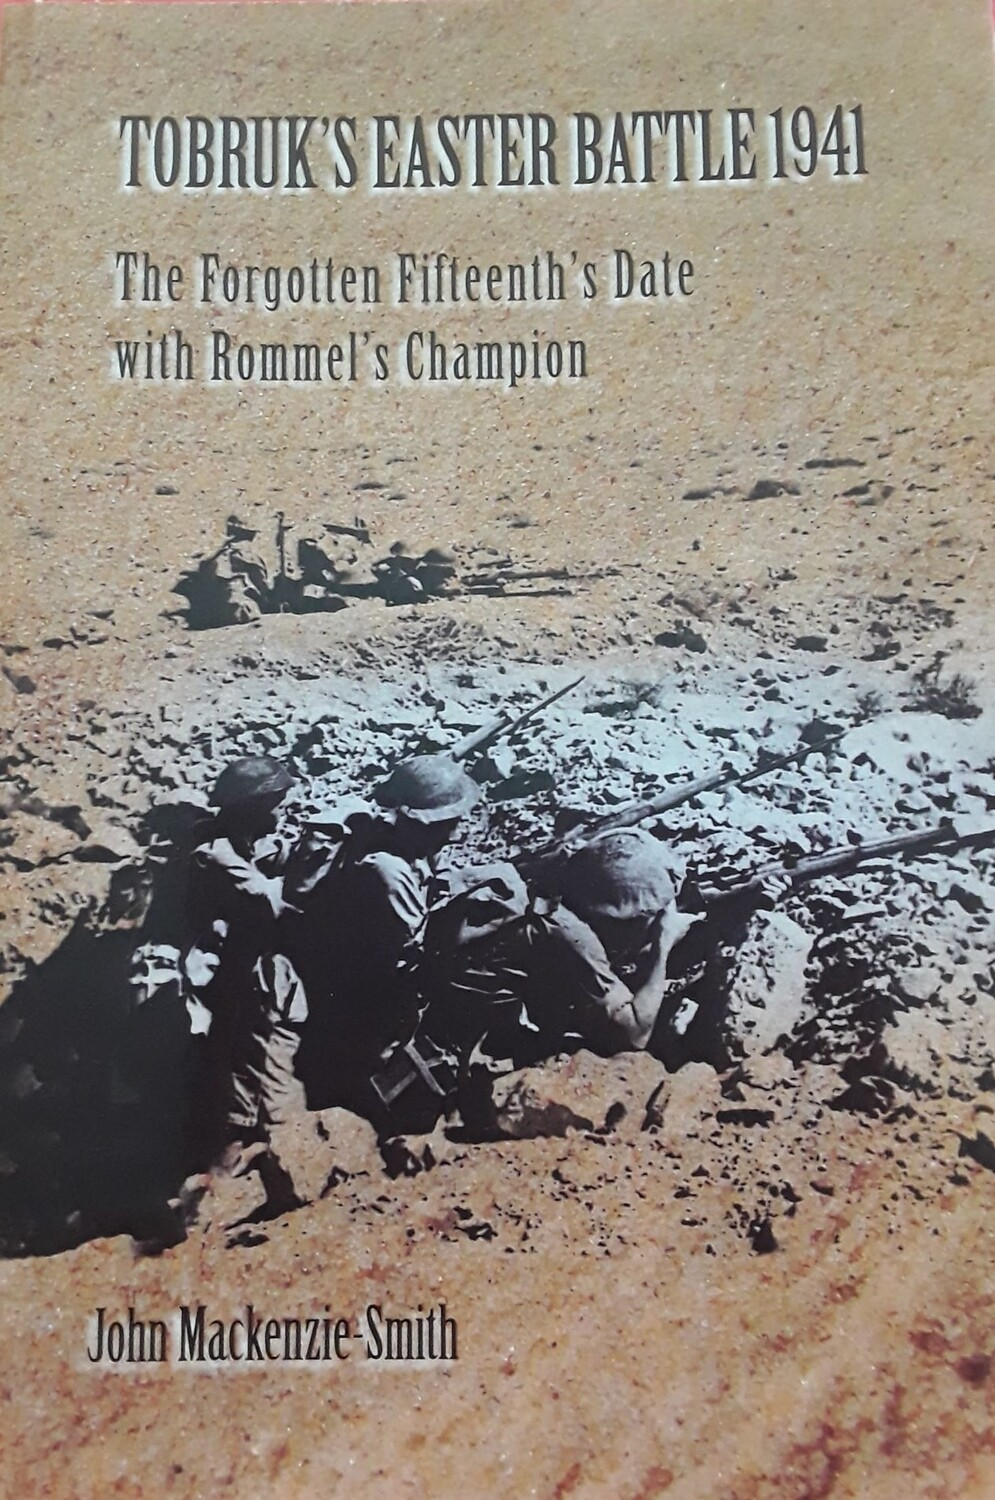 Tobruk's Easter Battle 1941 (signed by the author)